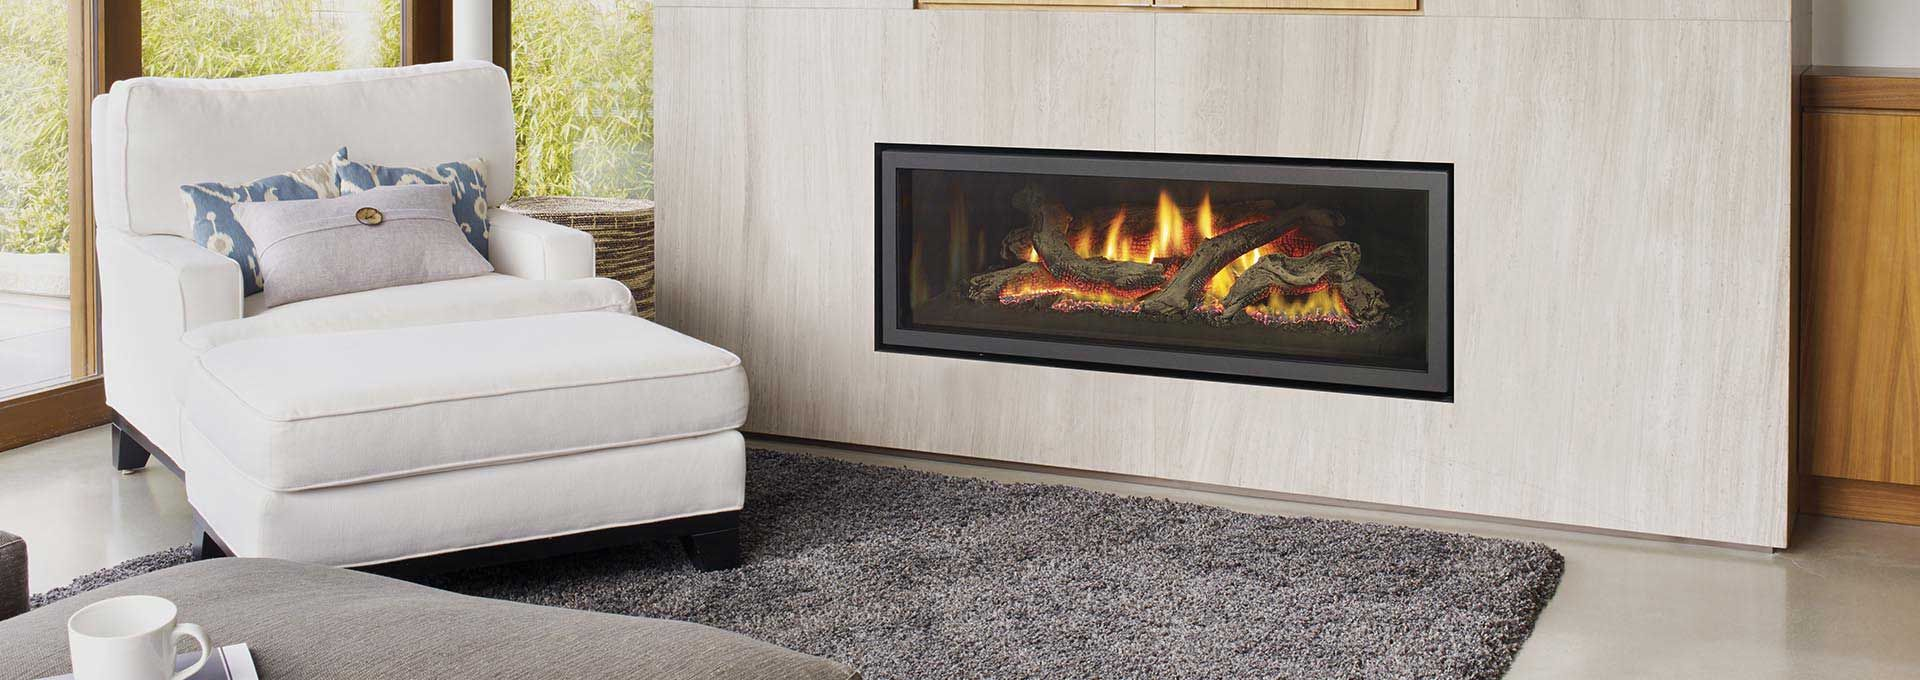 Greenfire Gf1500l Gas Fireplace Shown With Clean Edge Luxury